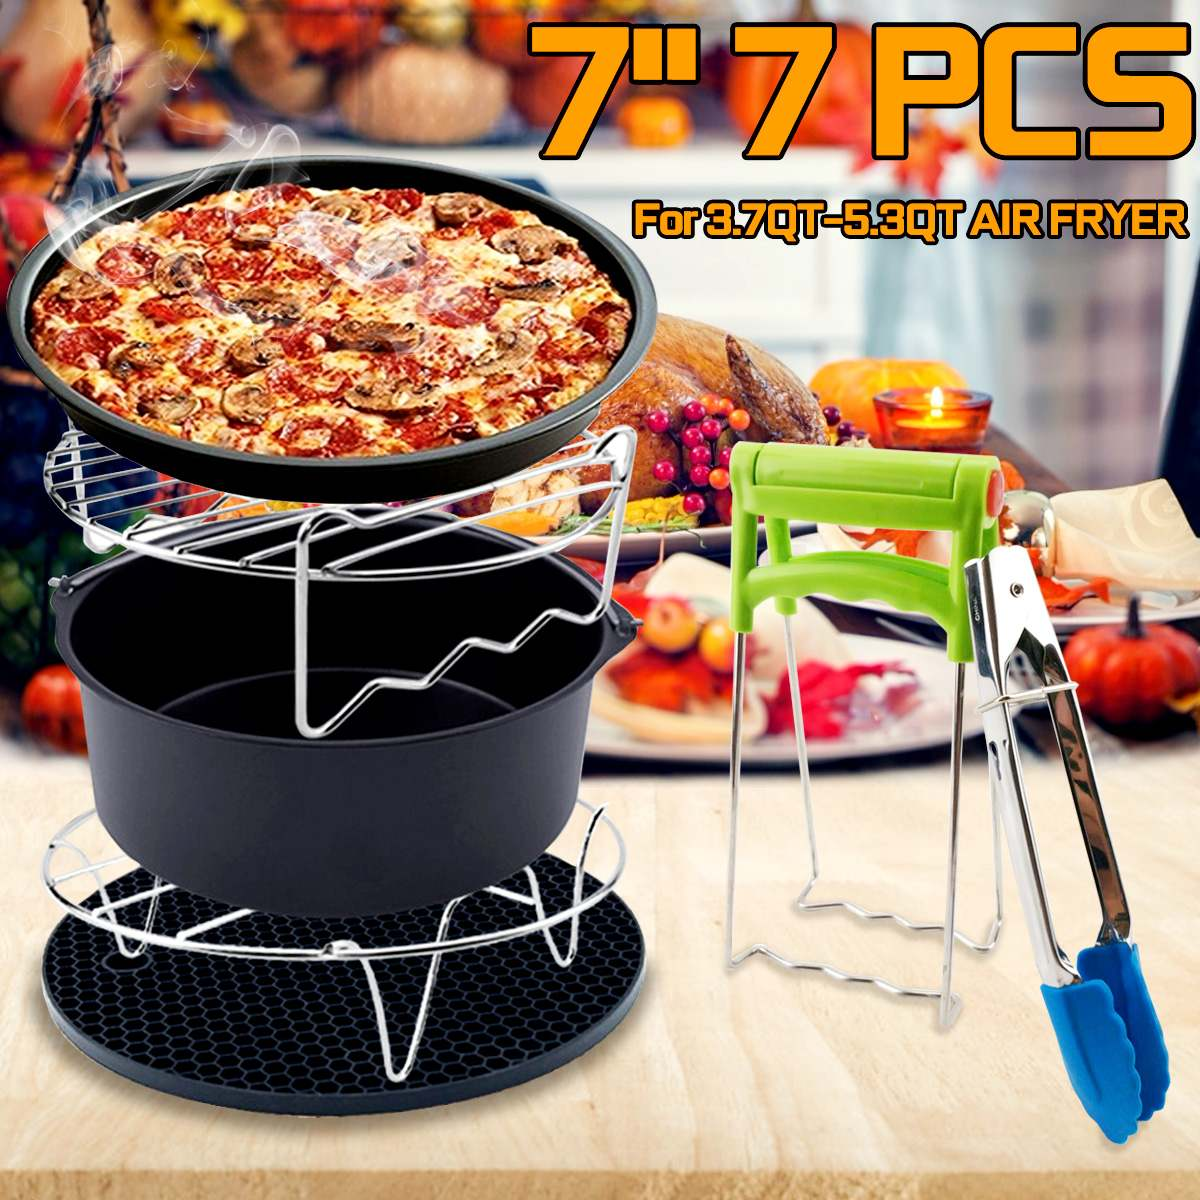 7PCS Air Fryer Accessories Cooking For 3.7QT-5.3QT Food Dish Plate Food Clip Pizza Pan Cake Barrel Silicone Mat Fit All Airfryer